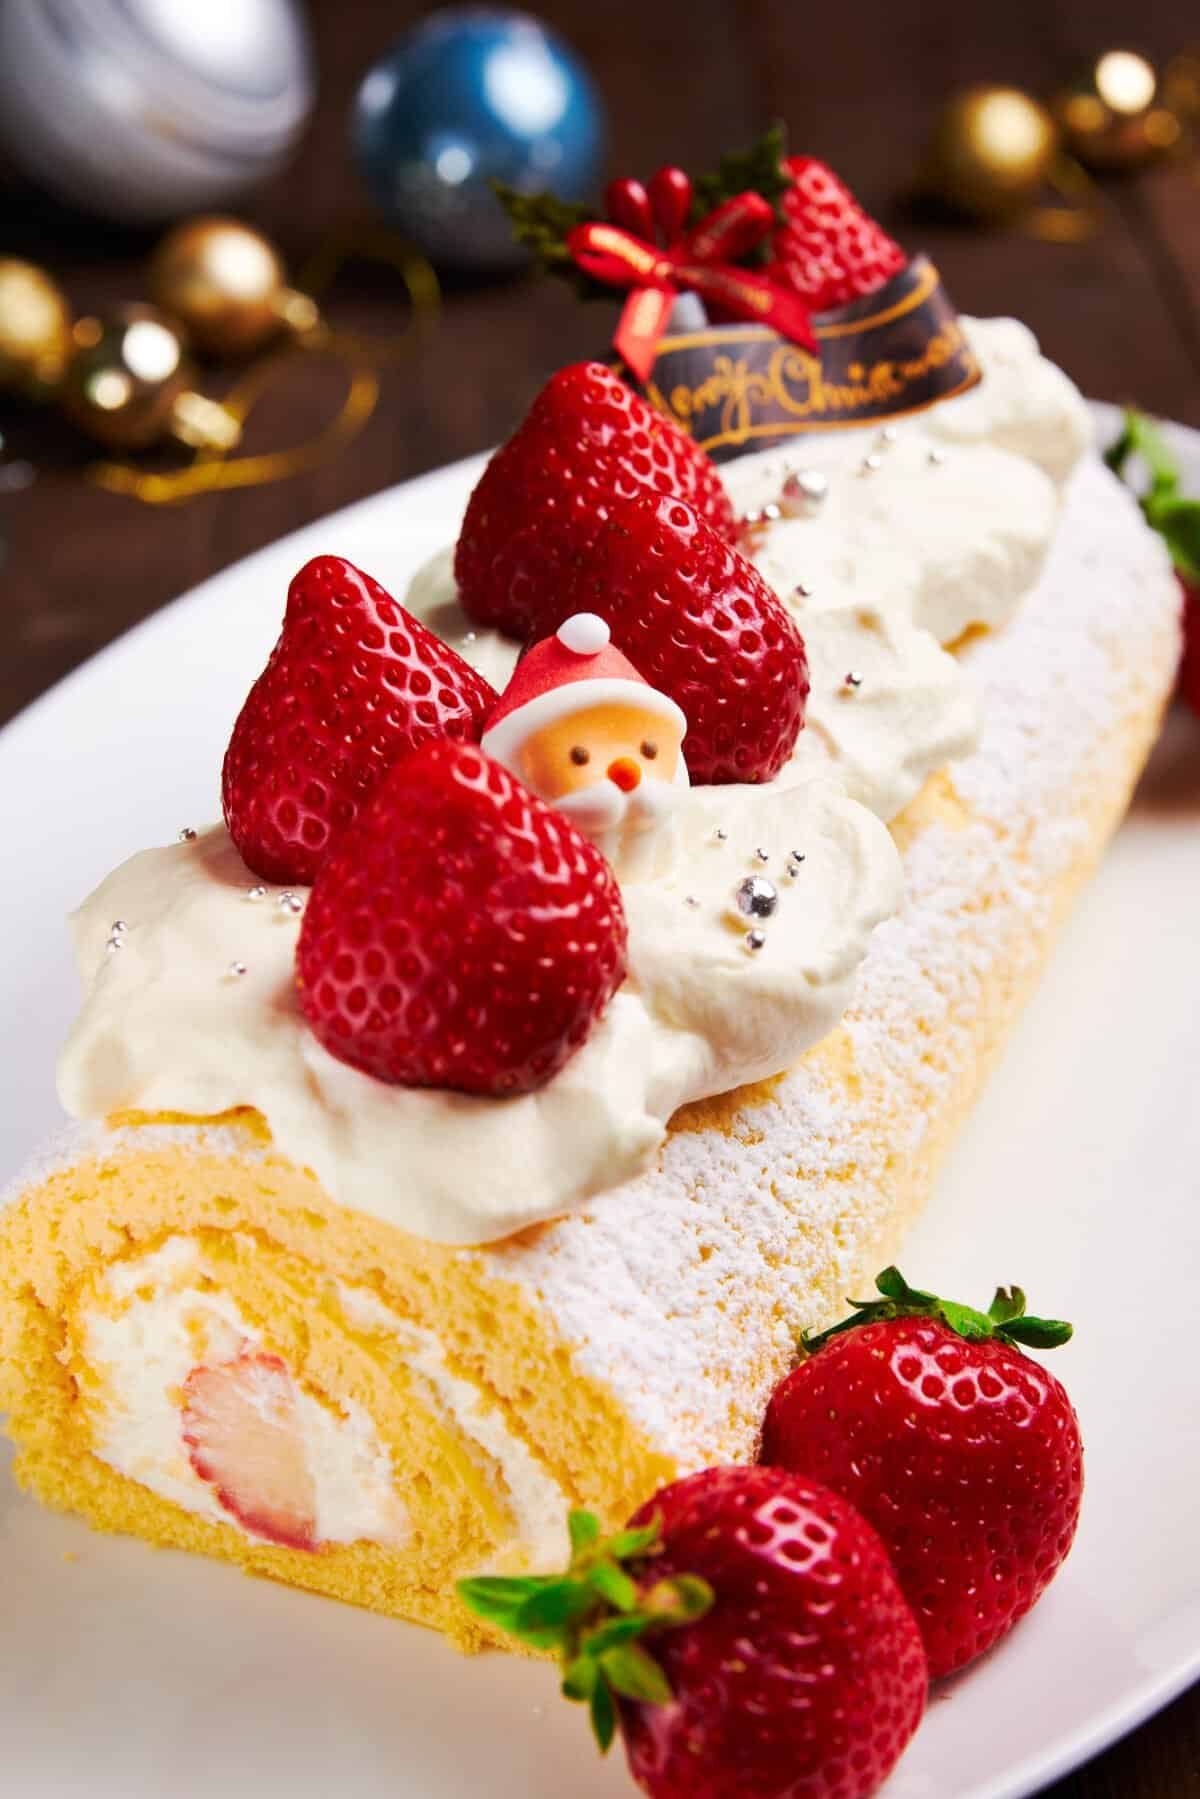 This mouthwatering Japanese Christmas cake is made with a tender spongecake rolled with stawberries and cream.